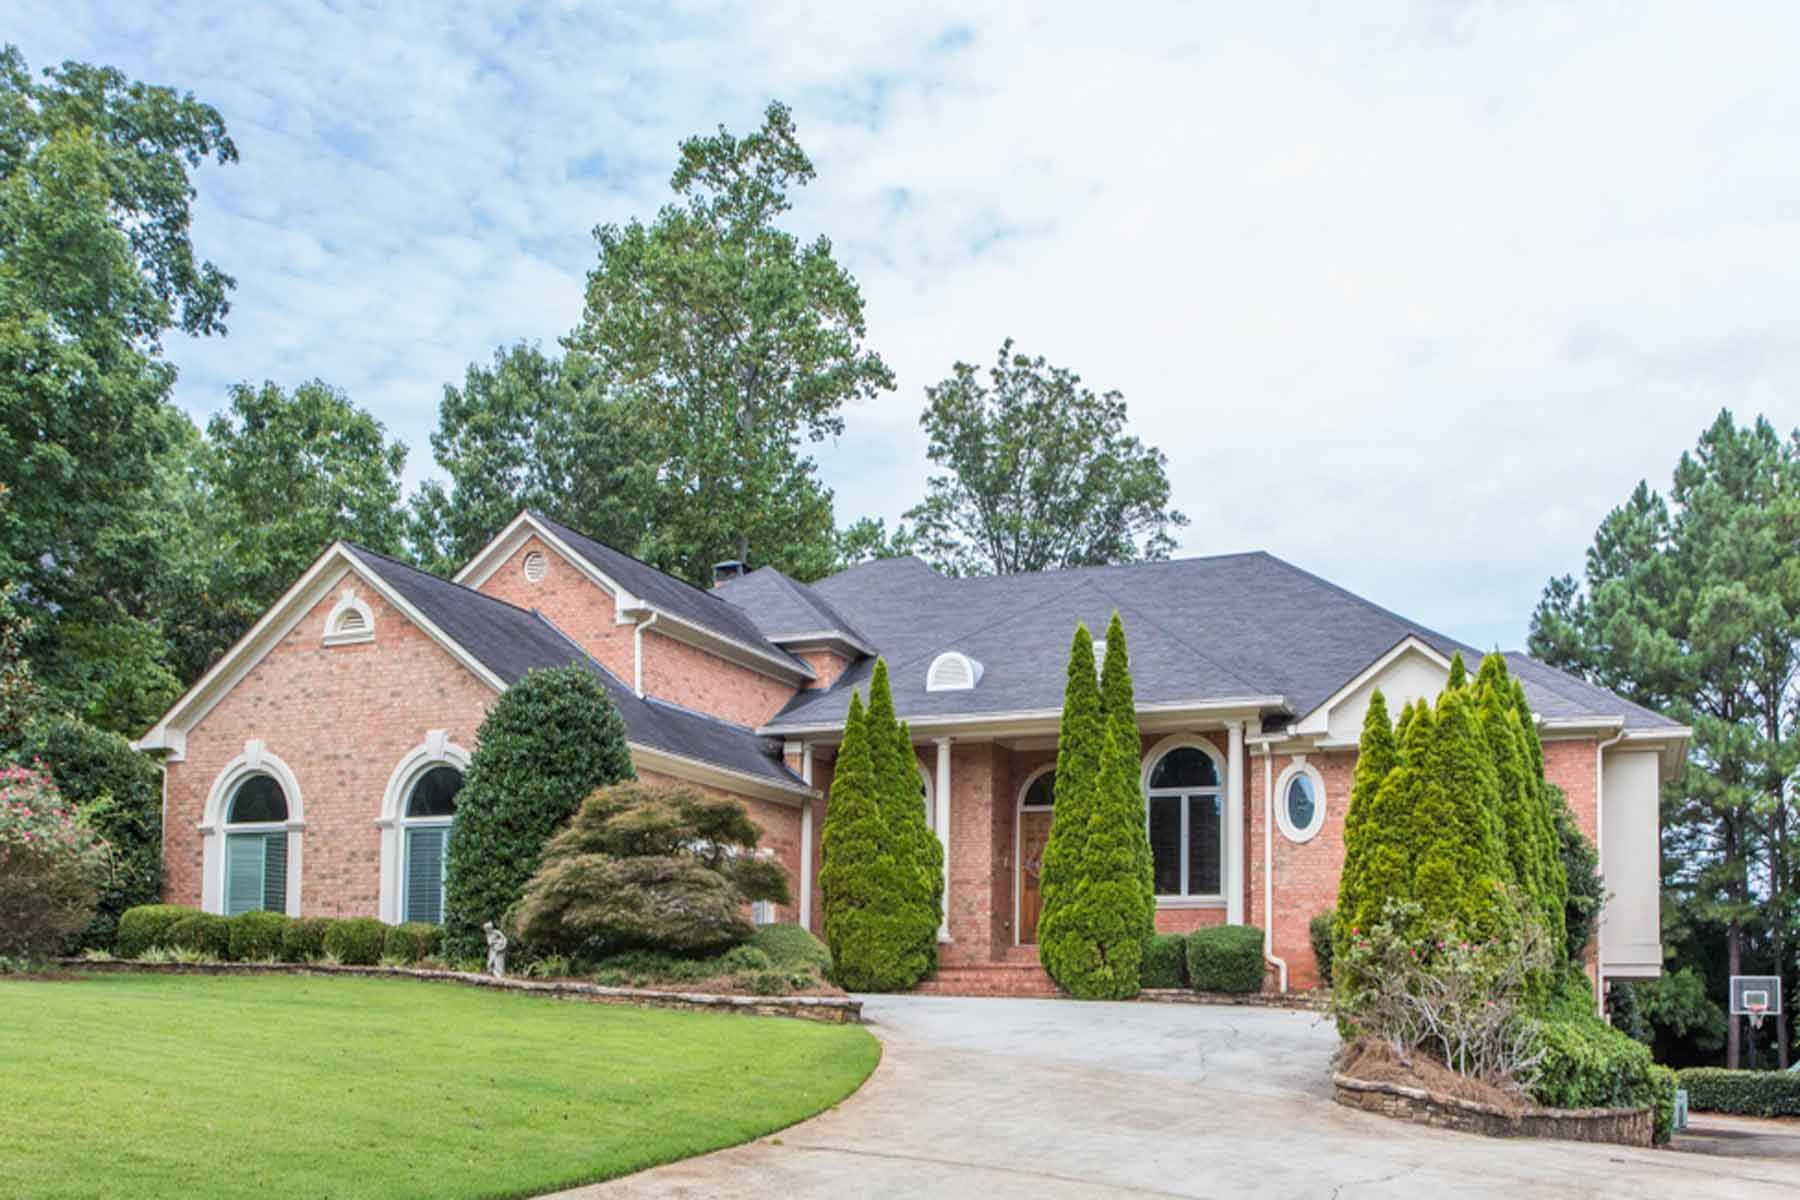 Property For Sale at Charming home in quite cul-de-sac of Eagles Landing Country Club.